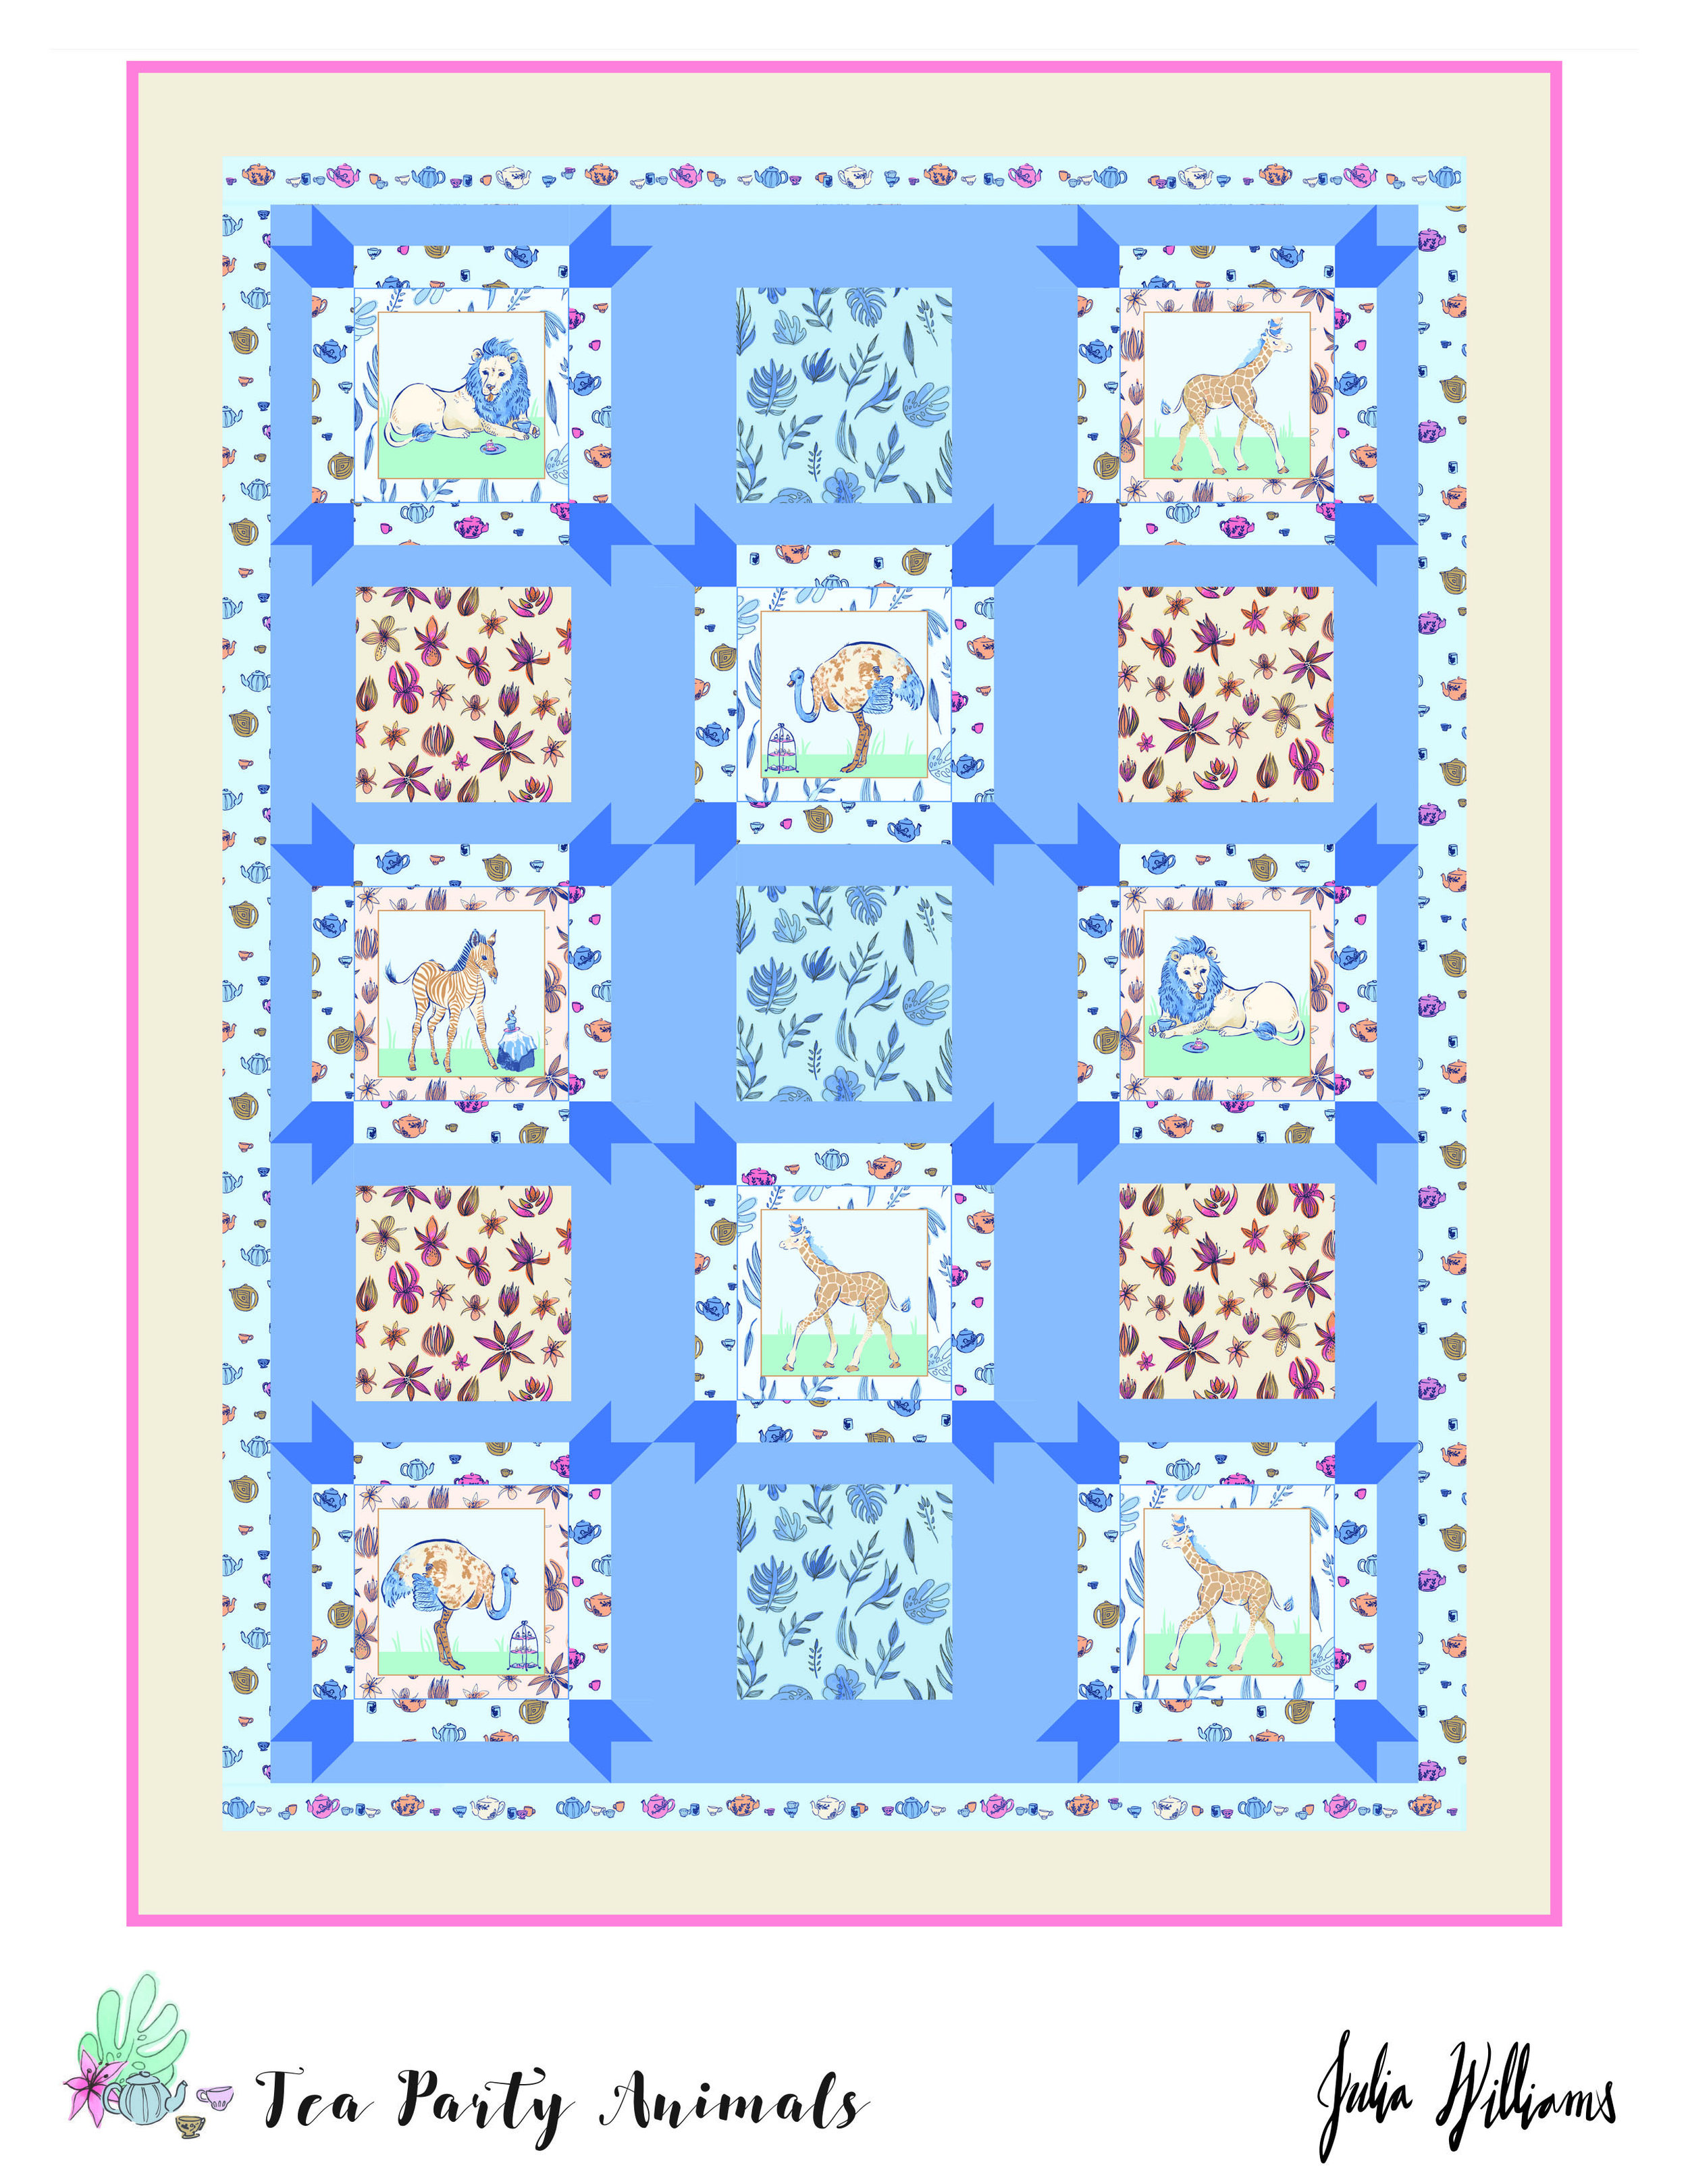 teaparty animals quilt retro presentation.jpg